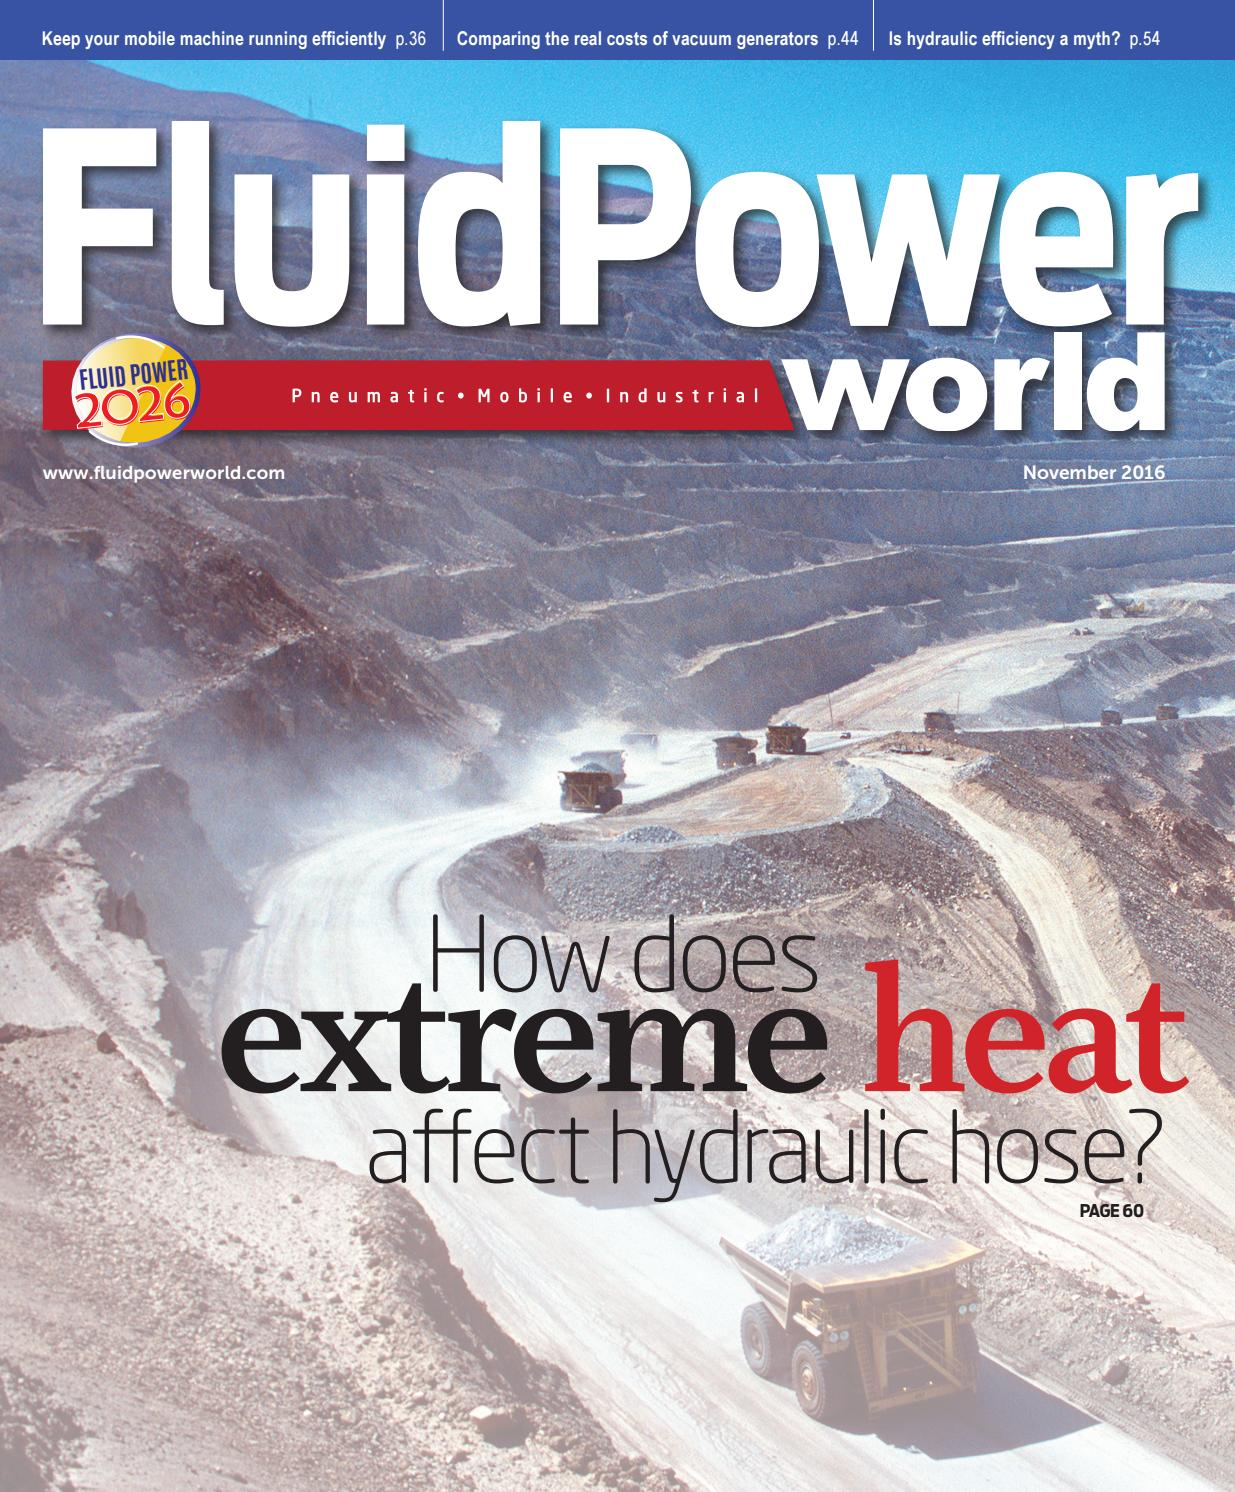 Fluid Power World November 2016 by WTWH Media LLC - issuu